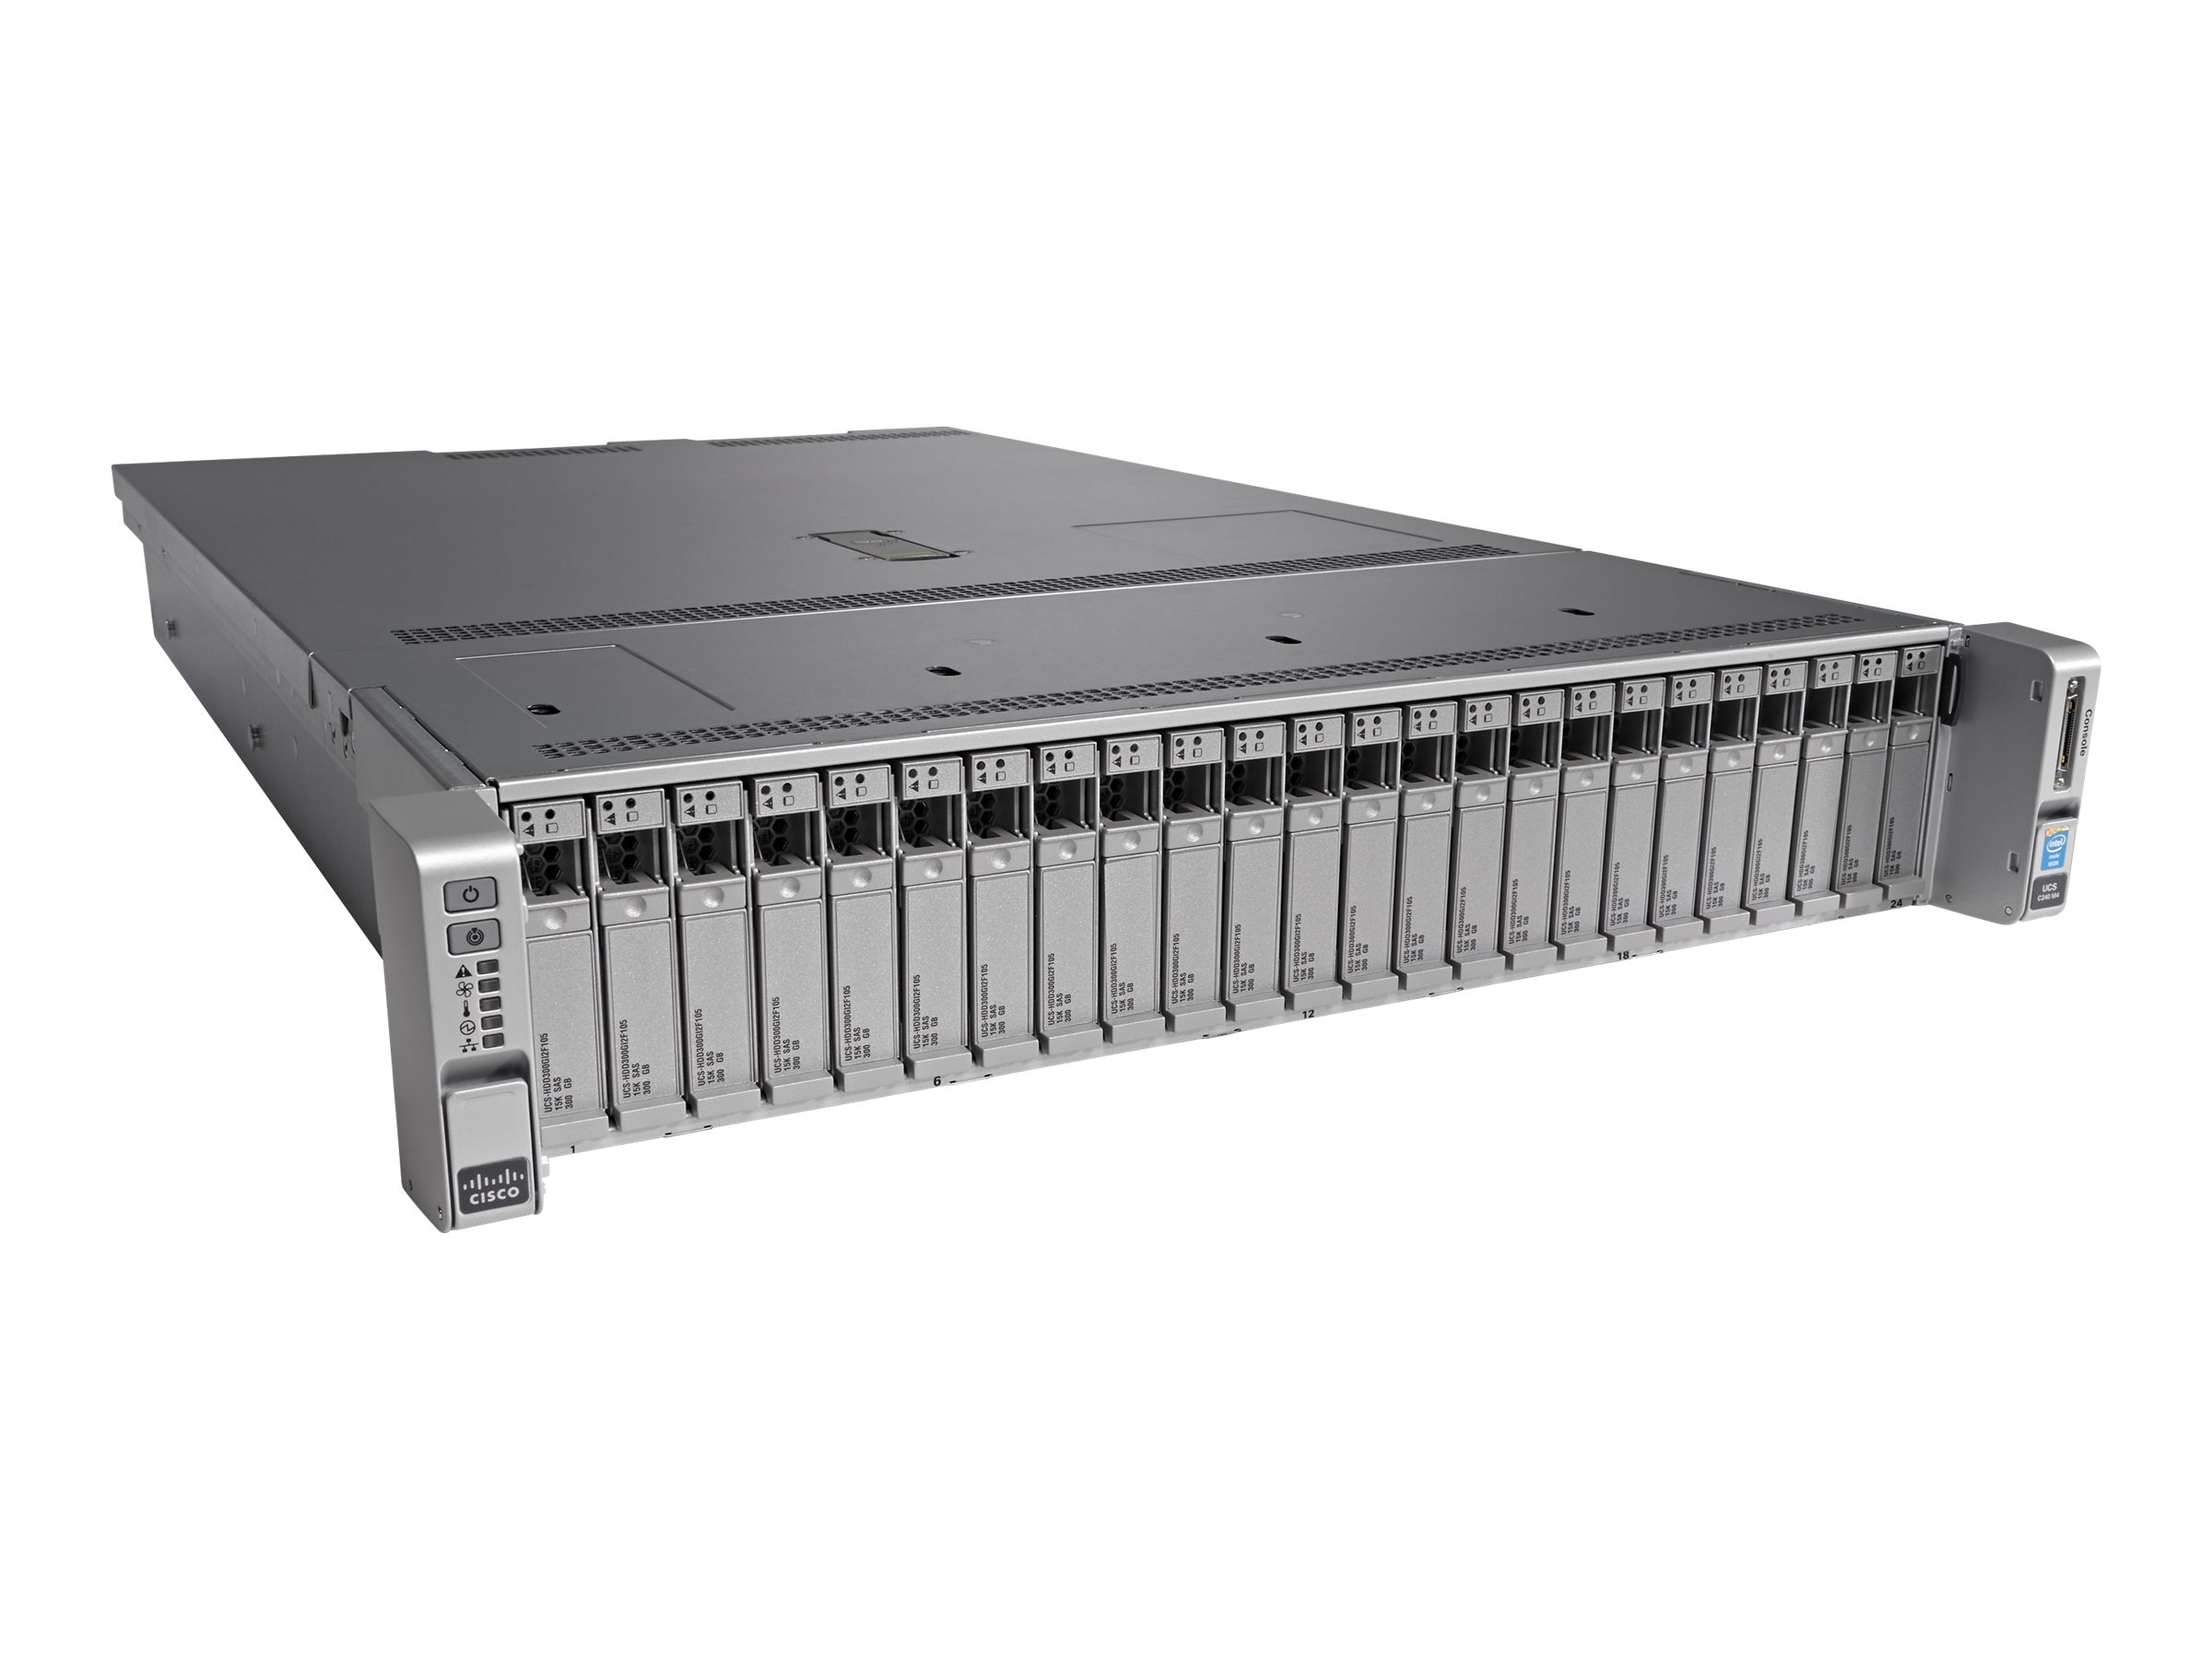 Cisco UCS-SPR-C240M4-BS2 Image 4